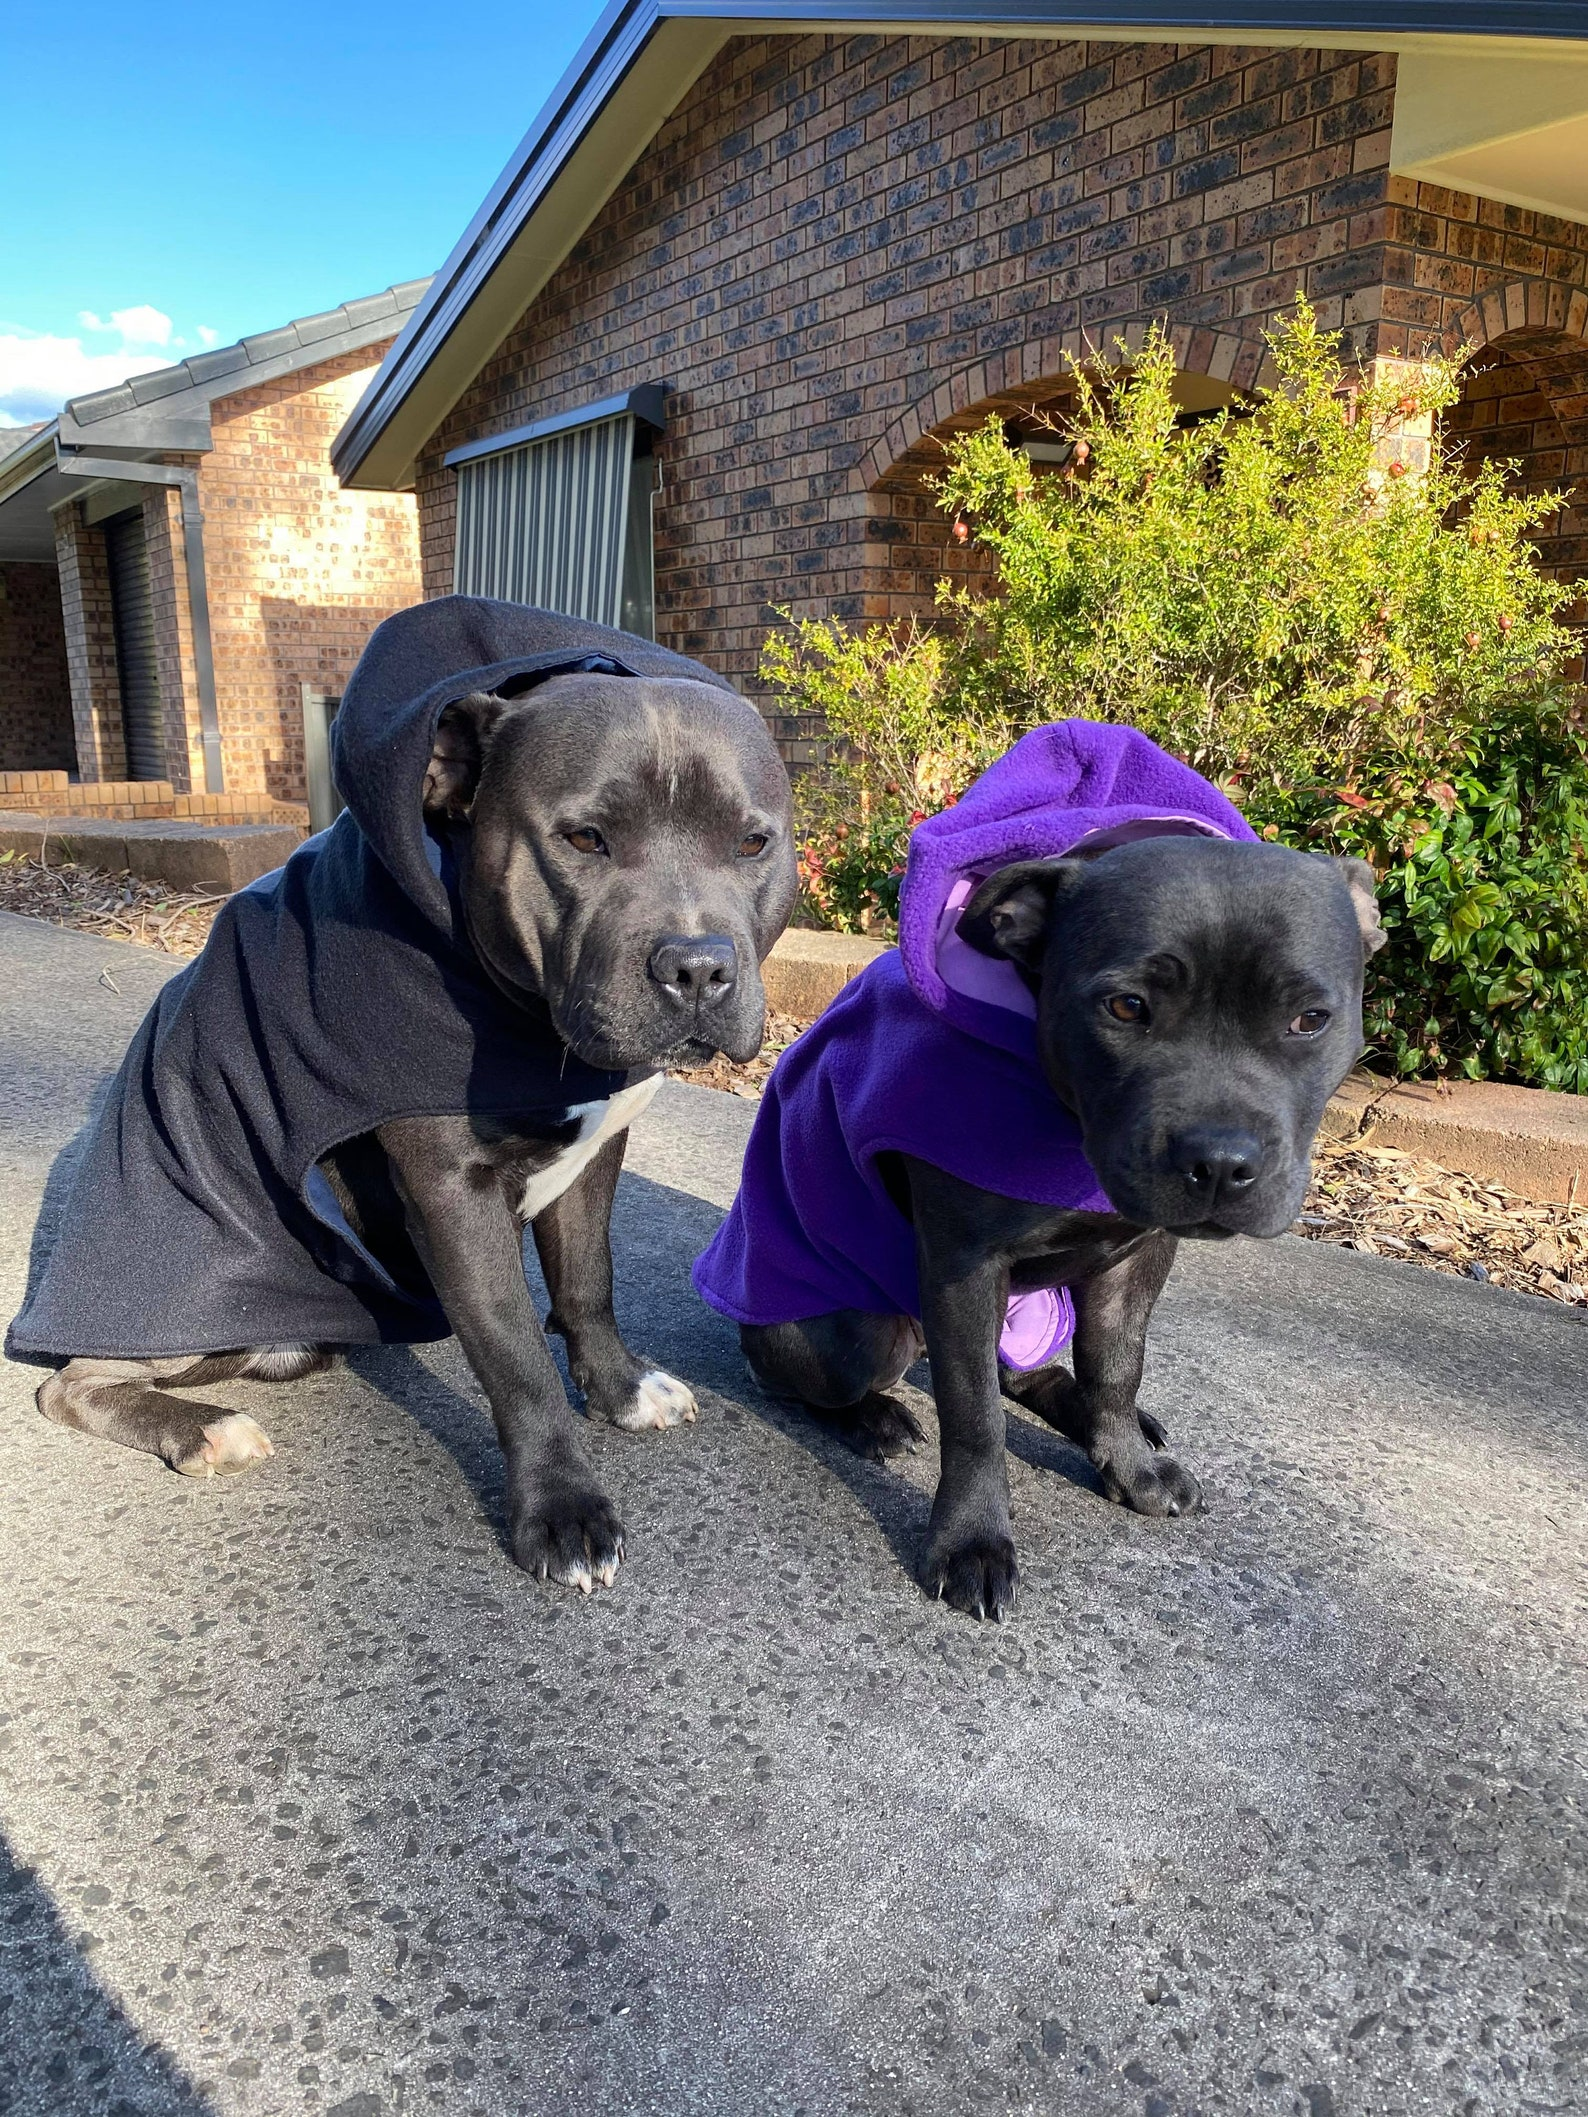 Two dogs wearing hoodies